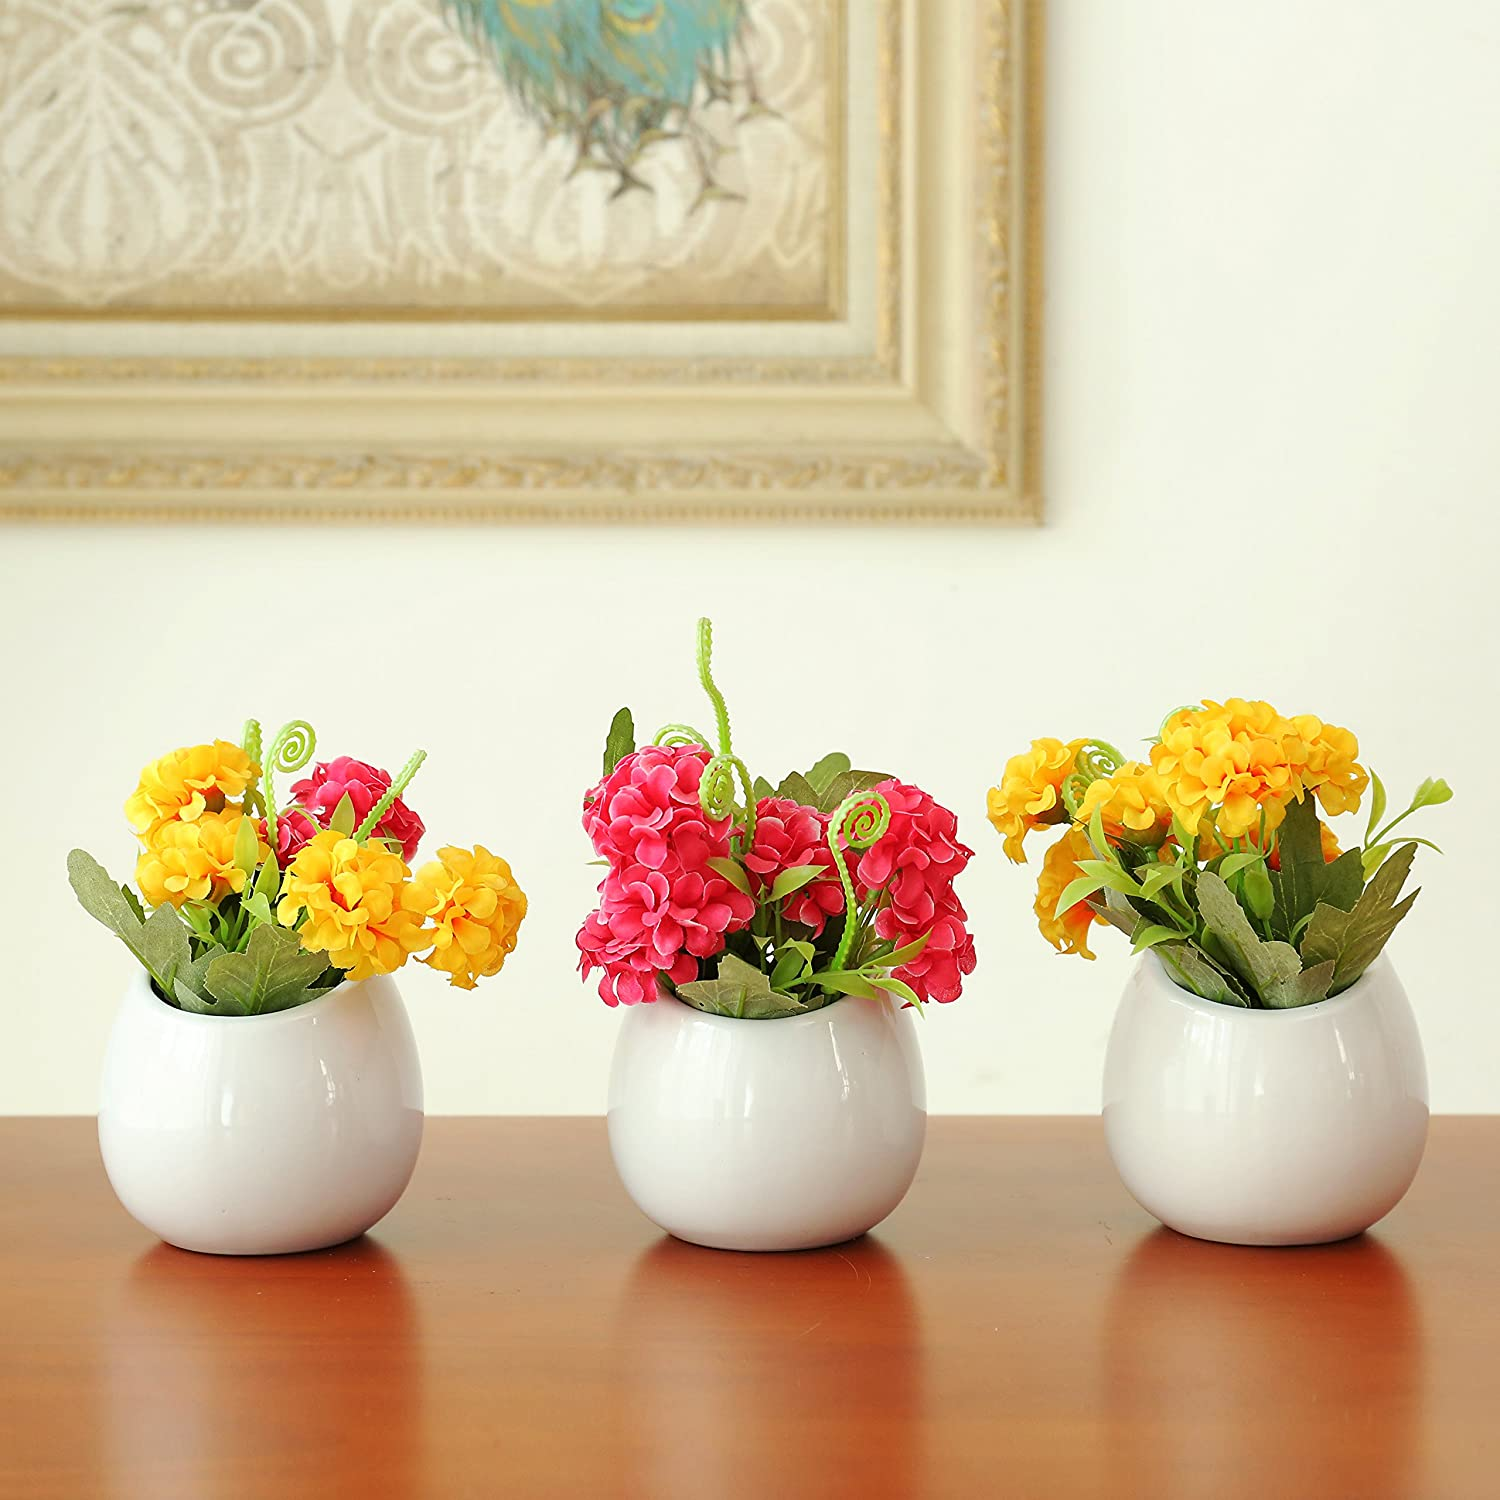 Amazon.com: Set of 3 Mini White Ceramic Wall Mountable Plant Vase, 4 ...